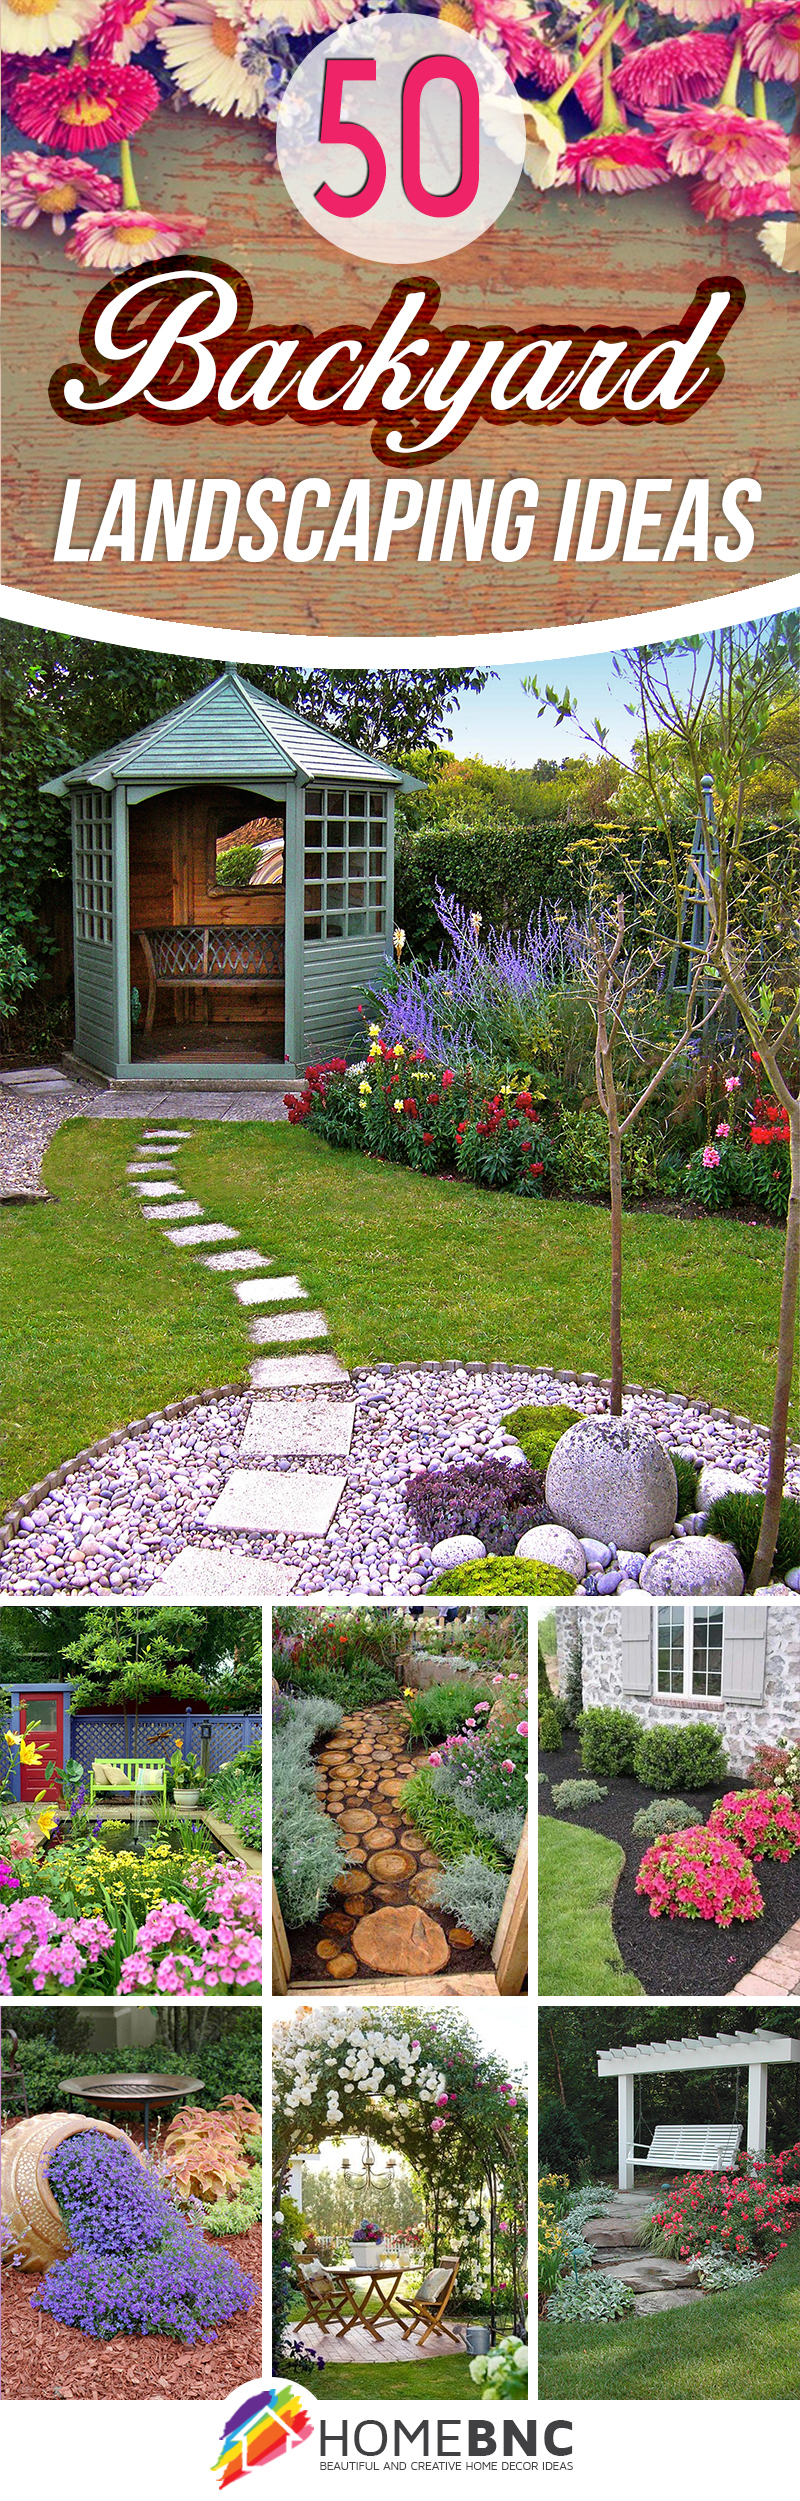 50 Best Backyard Landscaping Ideas And Designs In 2019 with regard to Backyard Layout Ideas